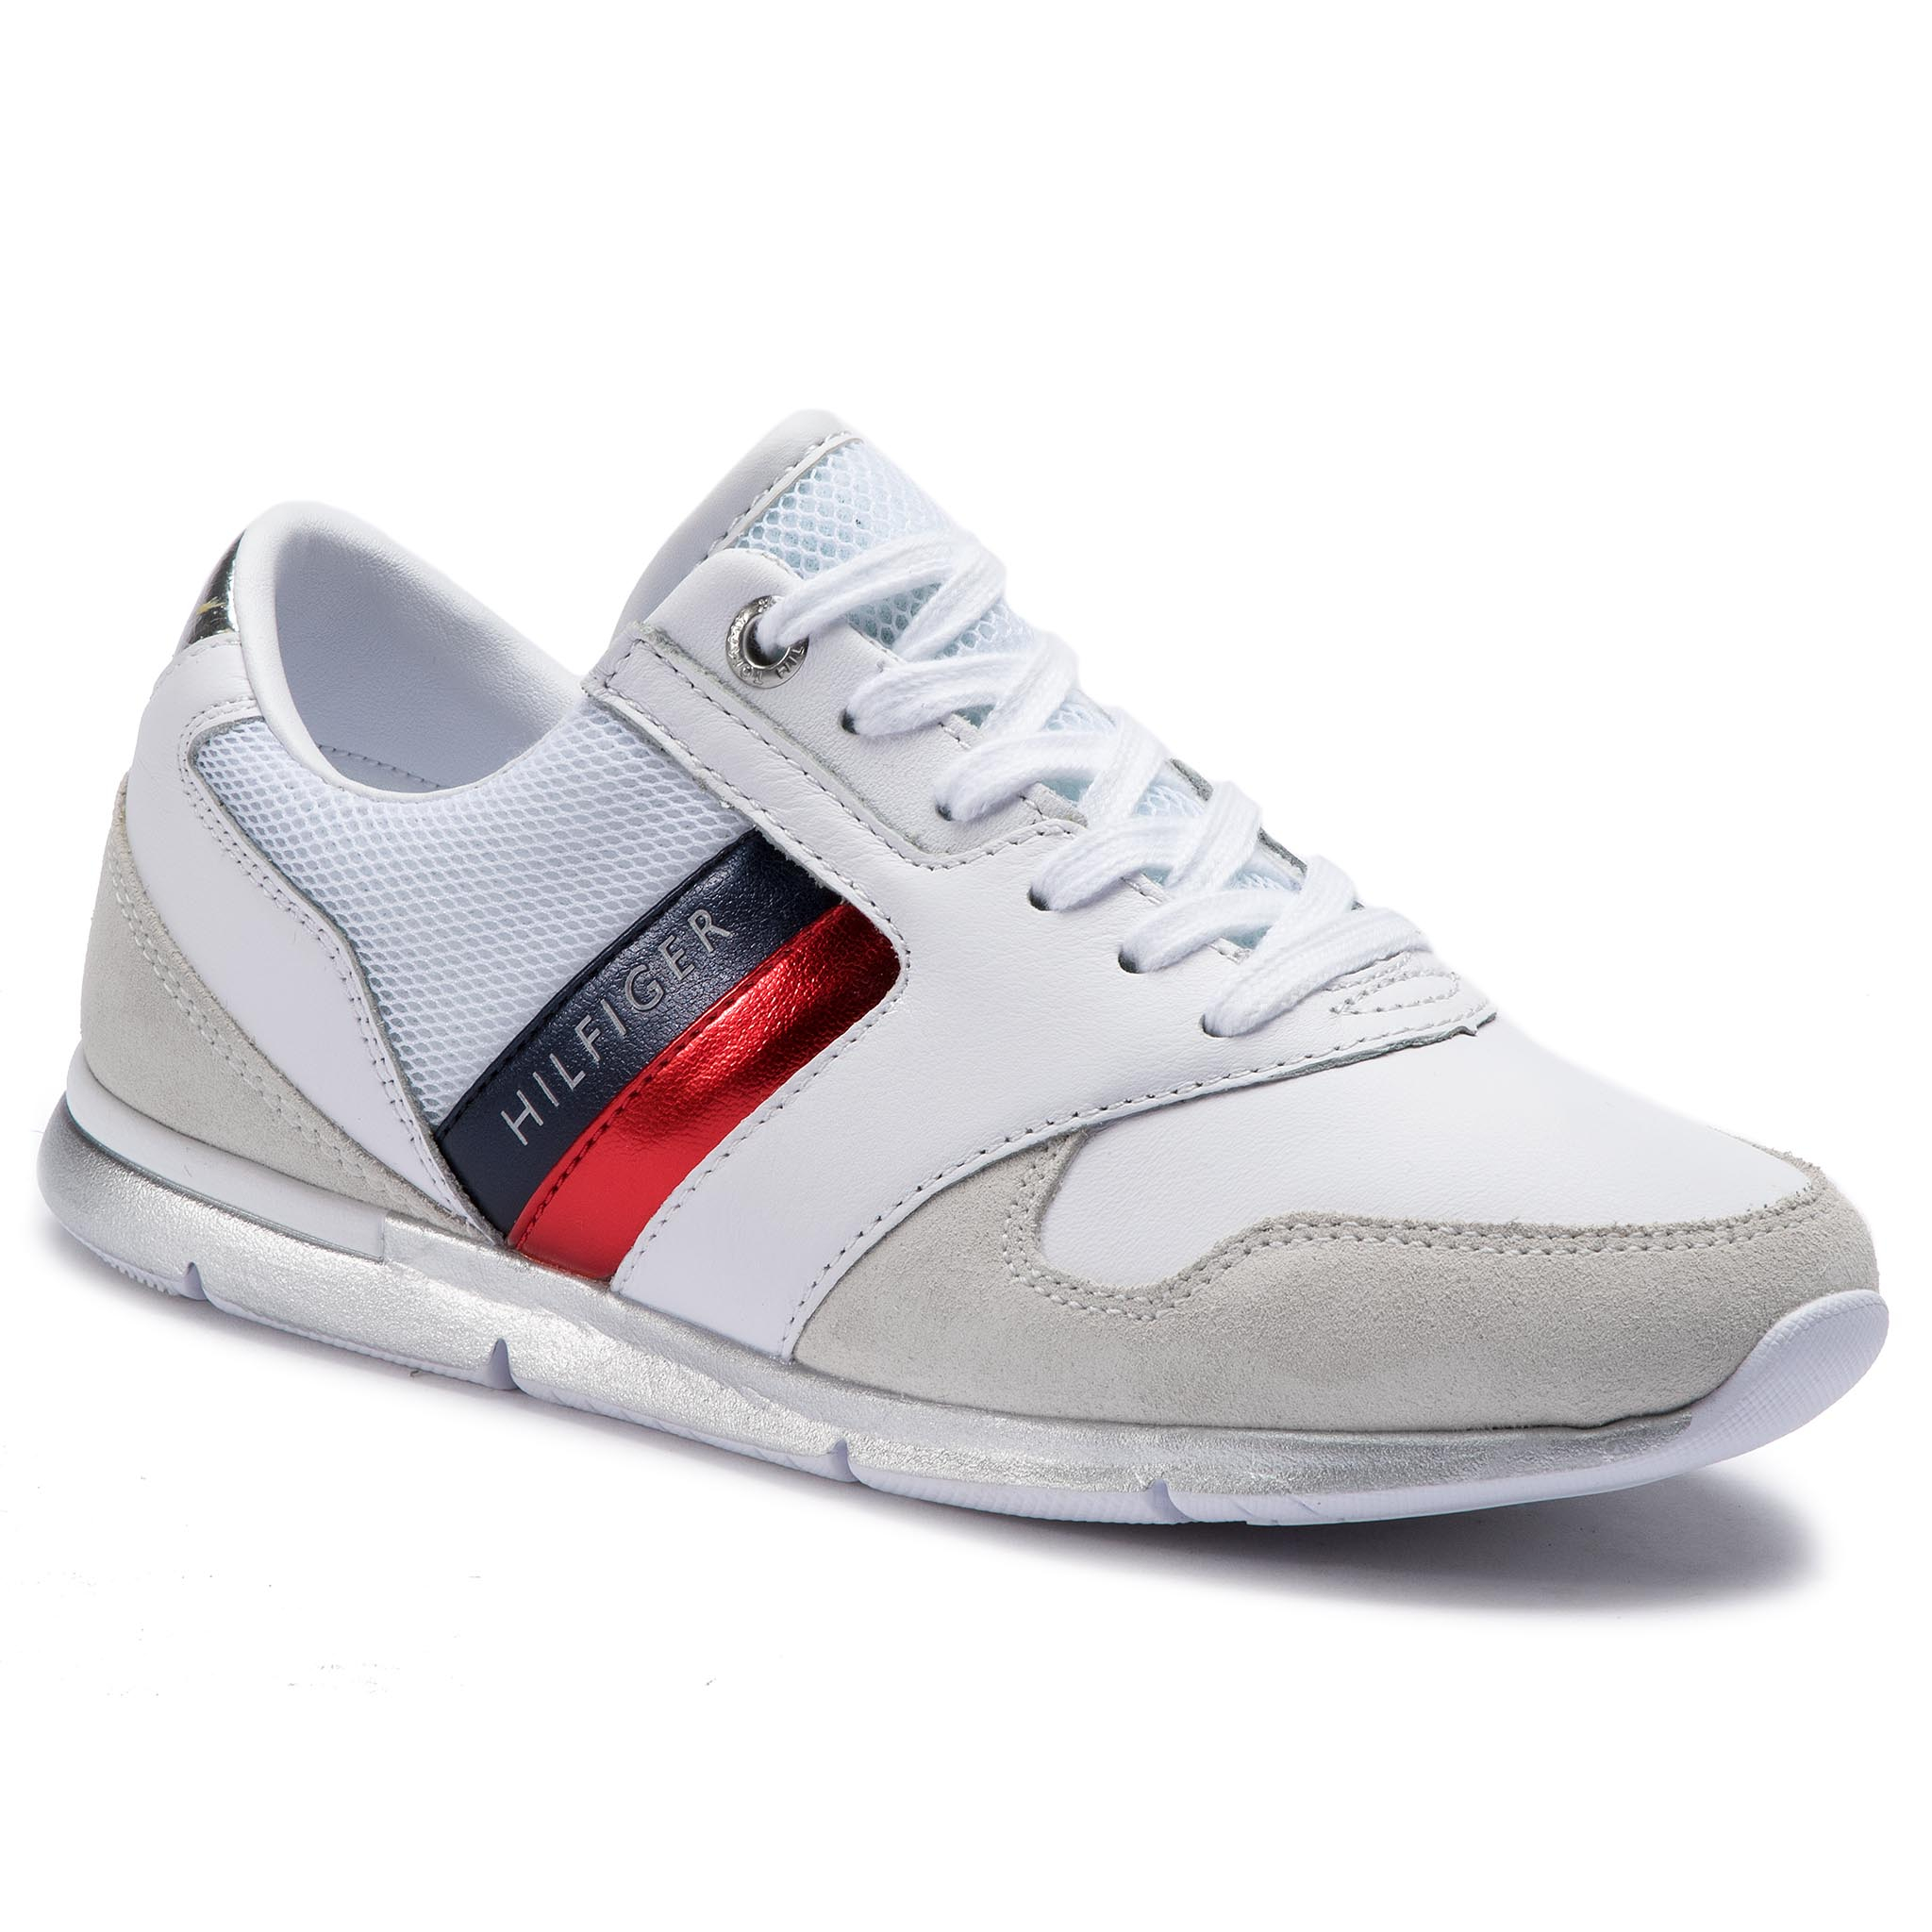 434bfc727 Sneakers TOMMY HILFIGER - Iridescent Light Sneaker FW0FW04100 White ...